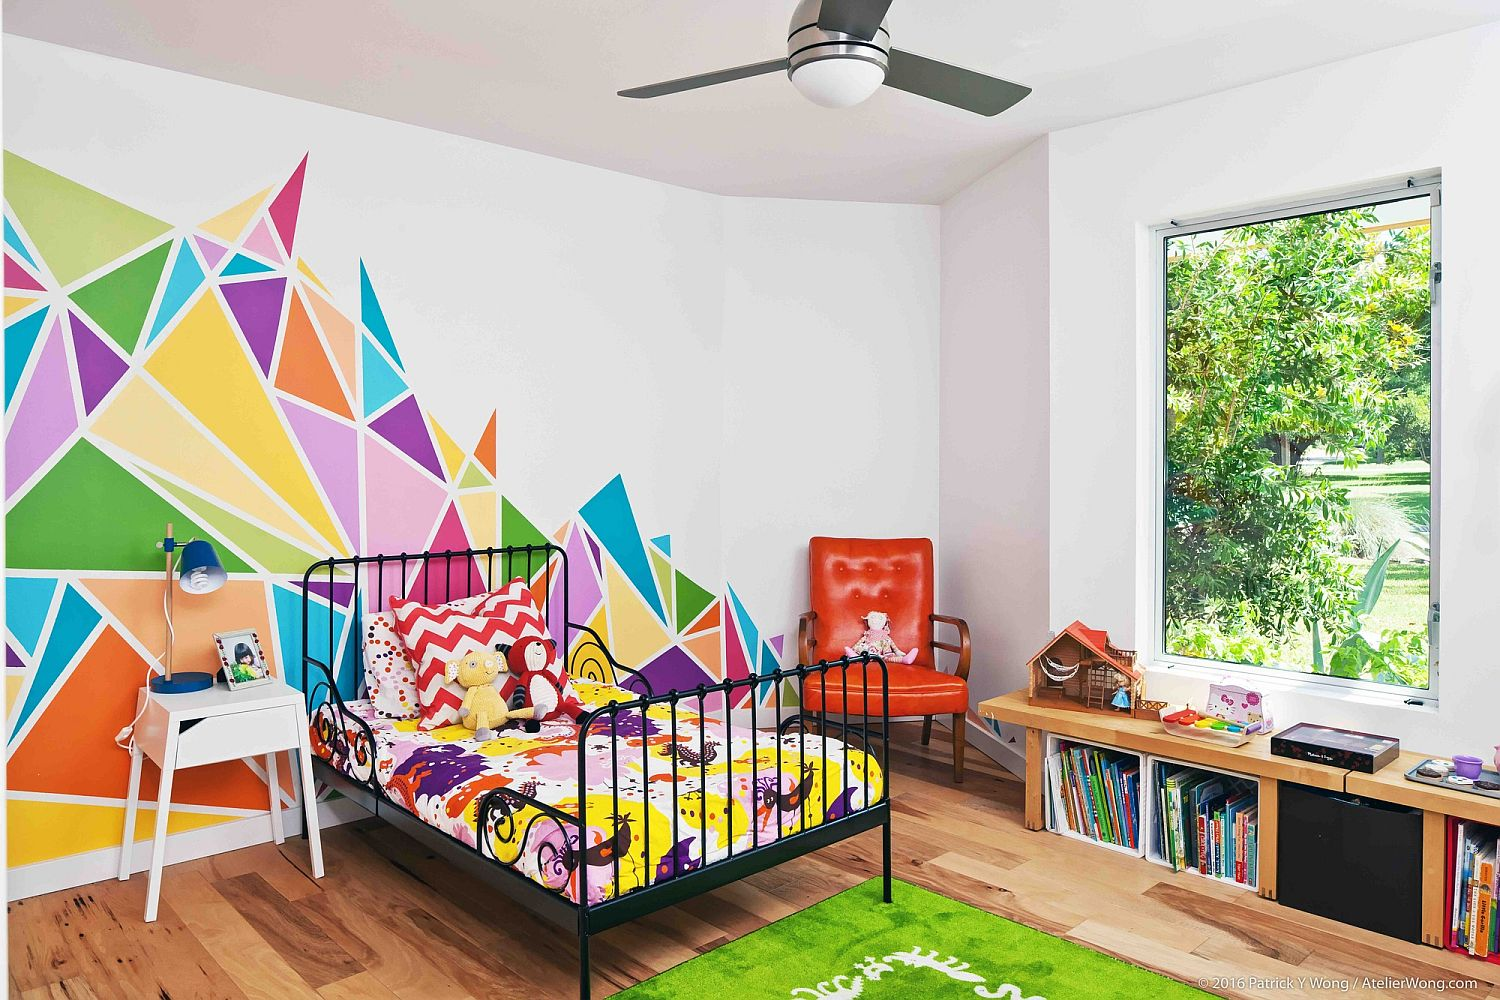 Multi-colored wall decal brings brightness to the kids' room